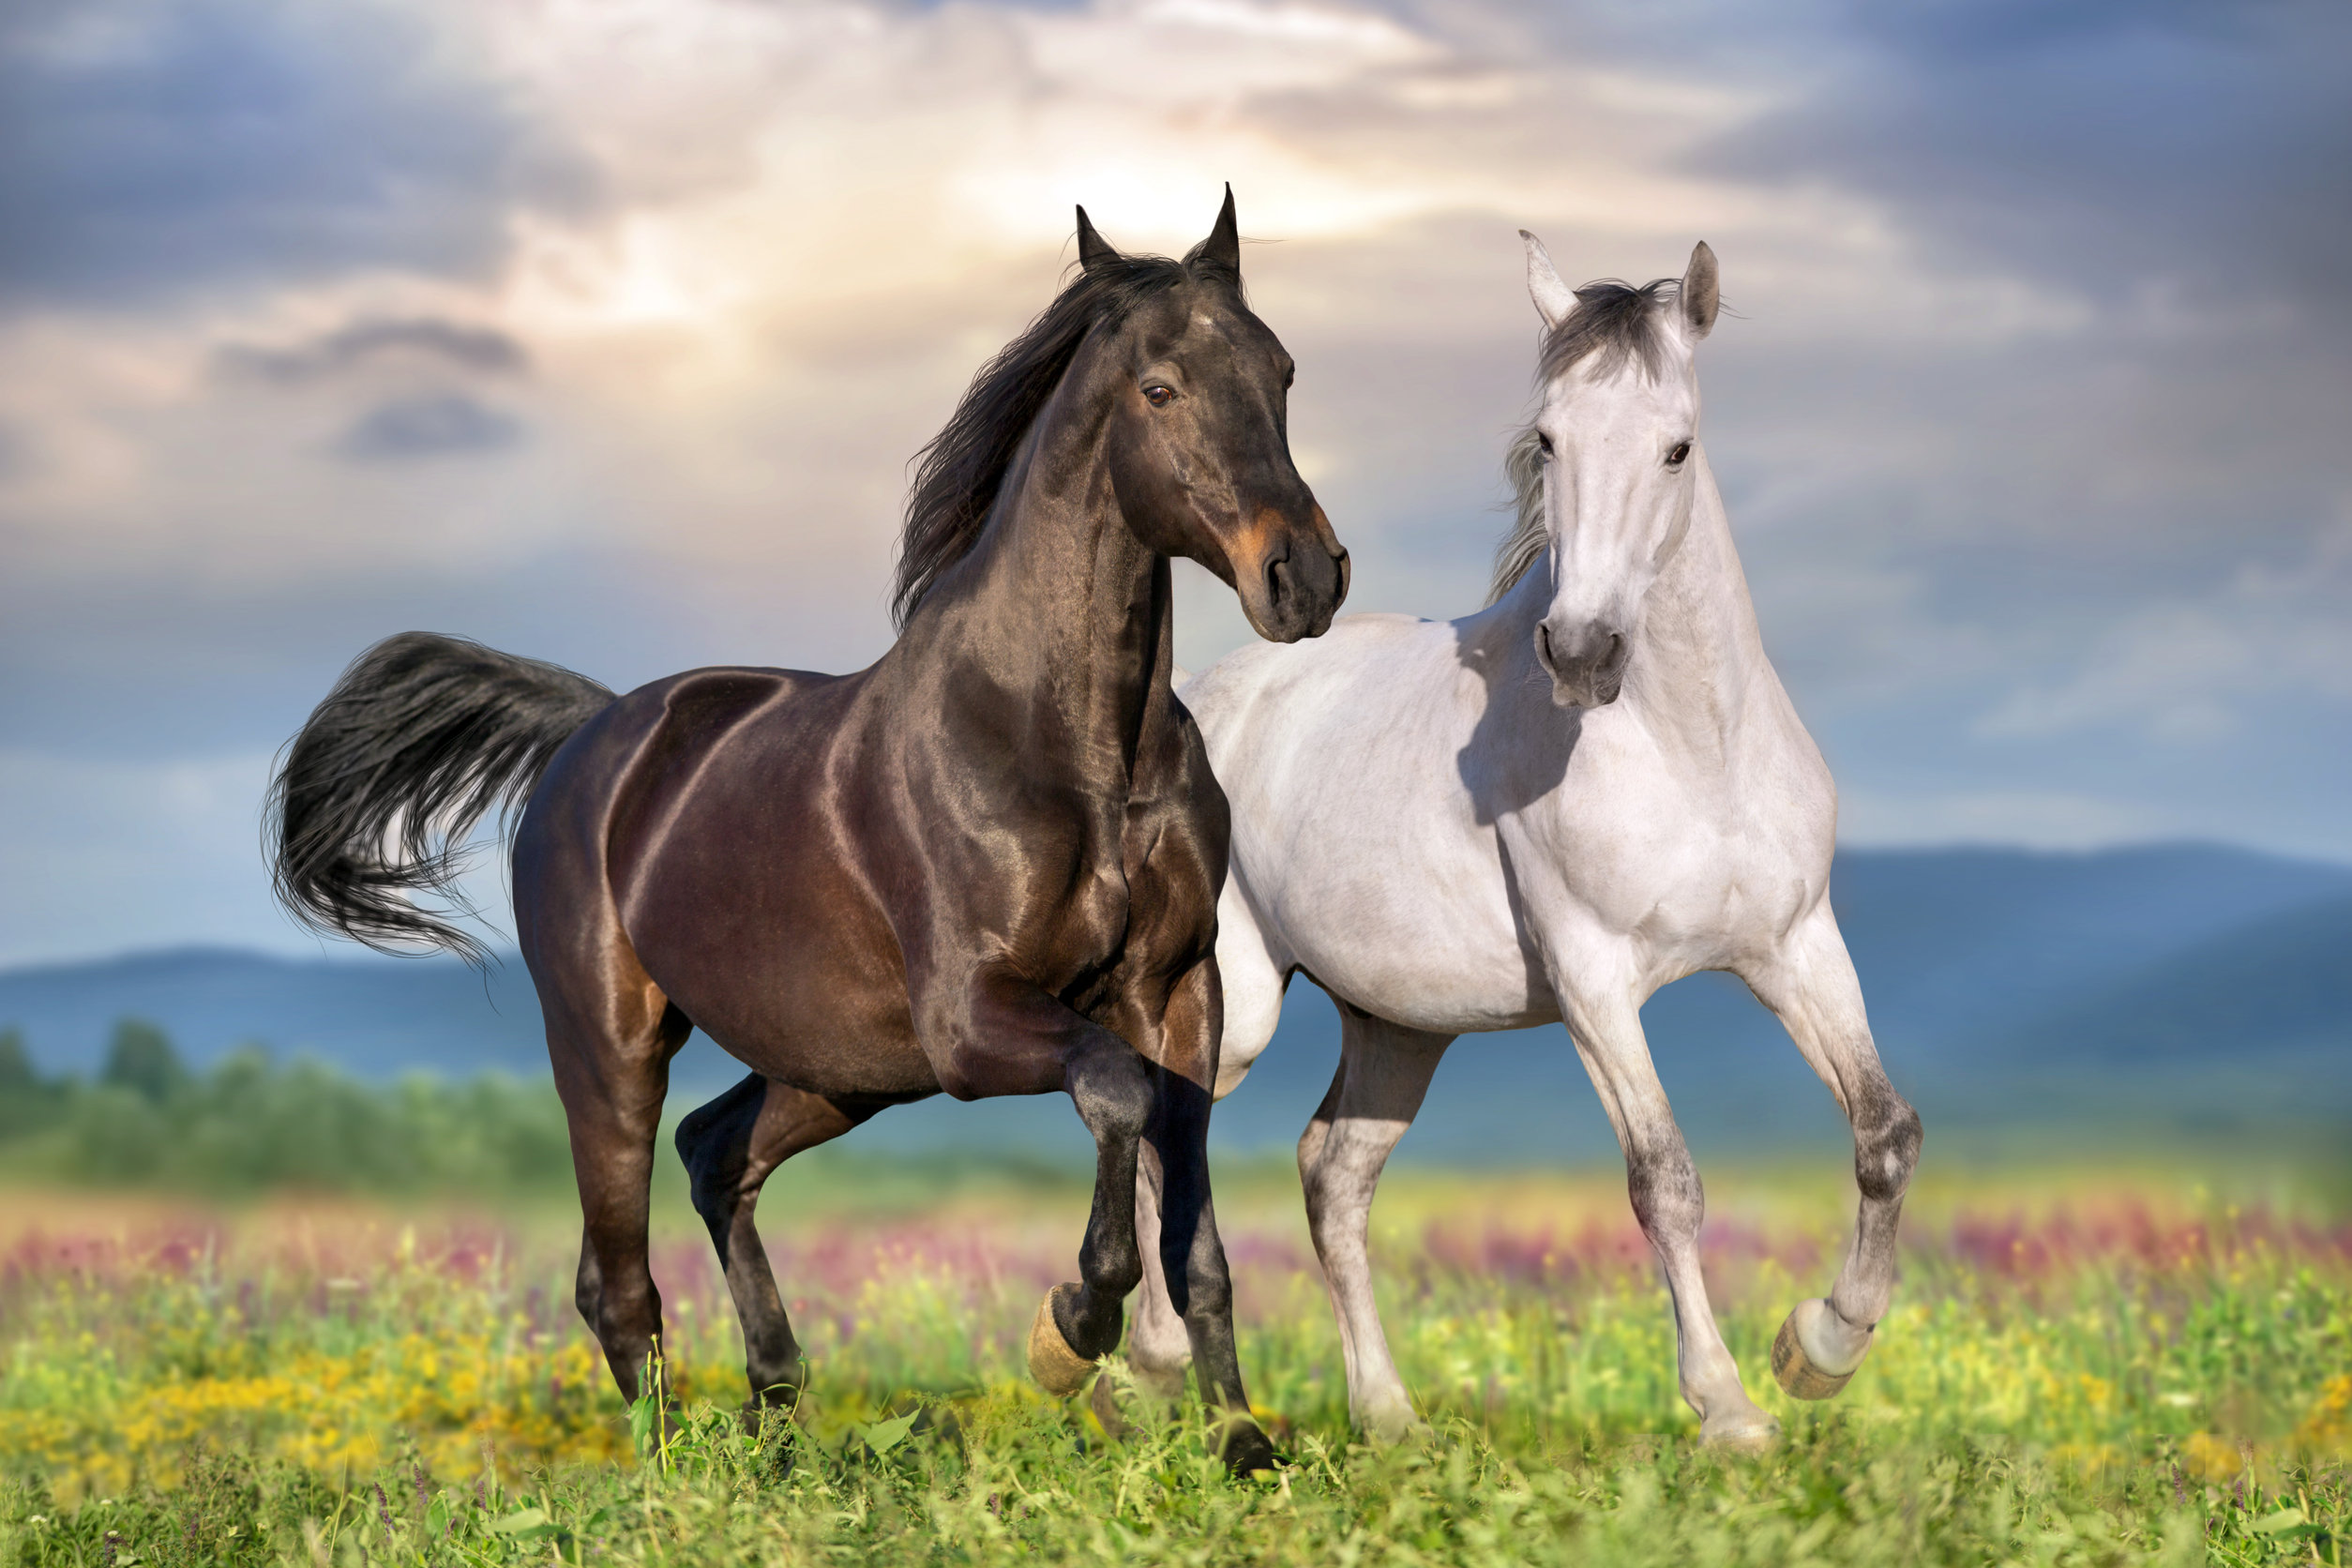 A white and black horse in a field.